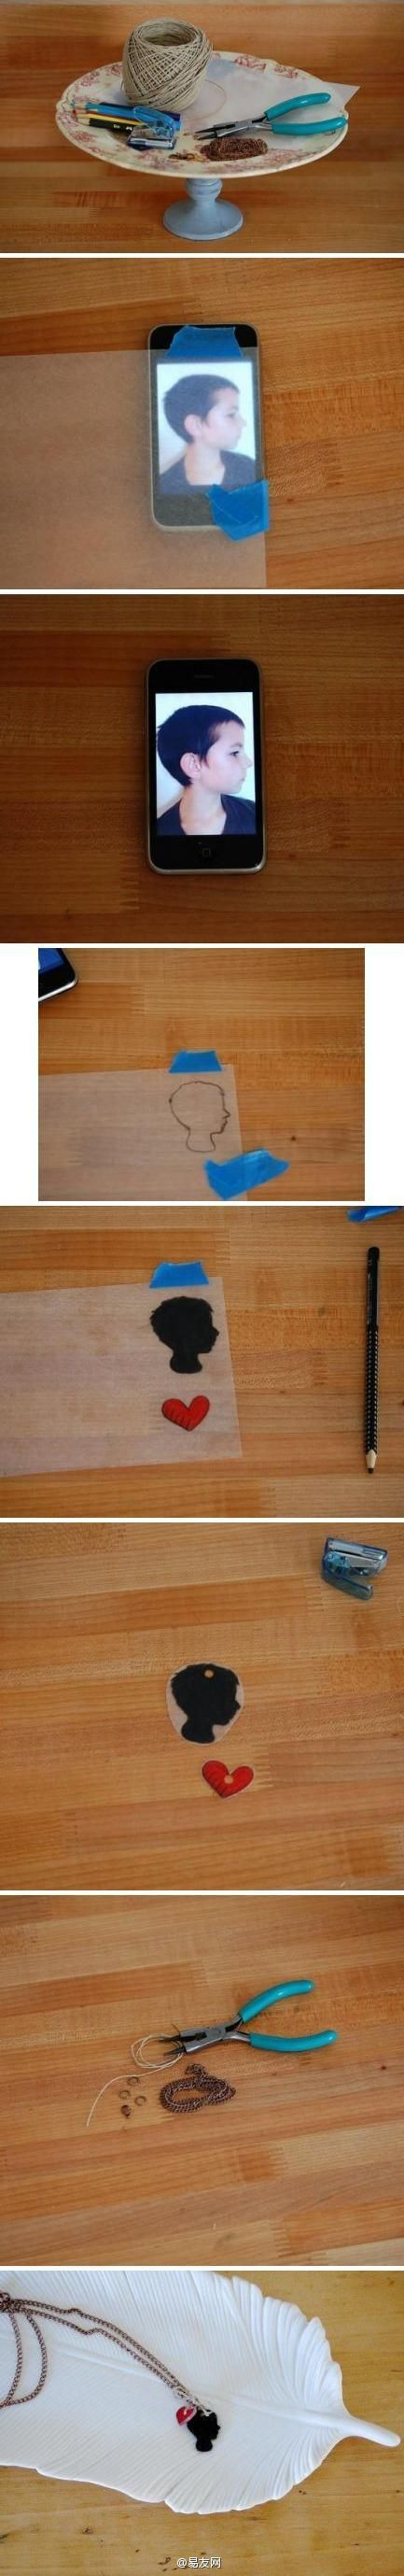 shrinky dink silhouette necklace DIY - so cute!!! Mother's Day gift idea